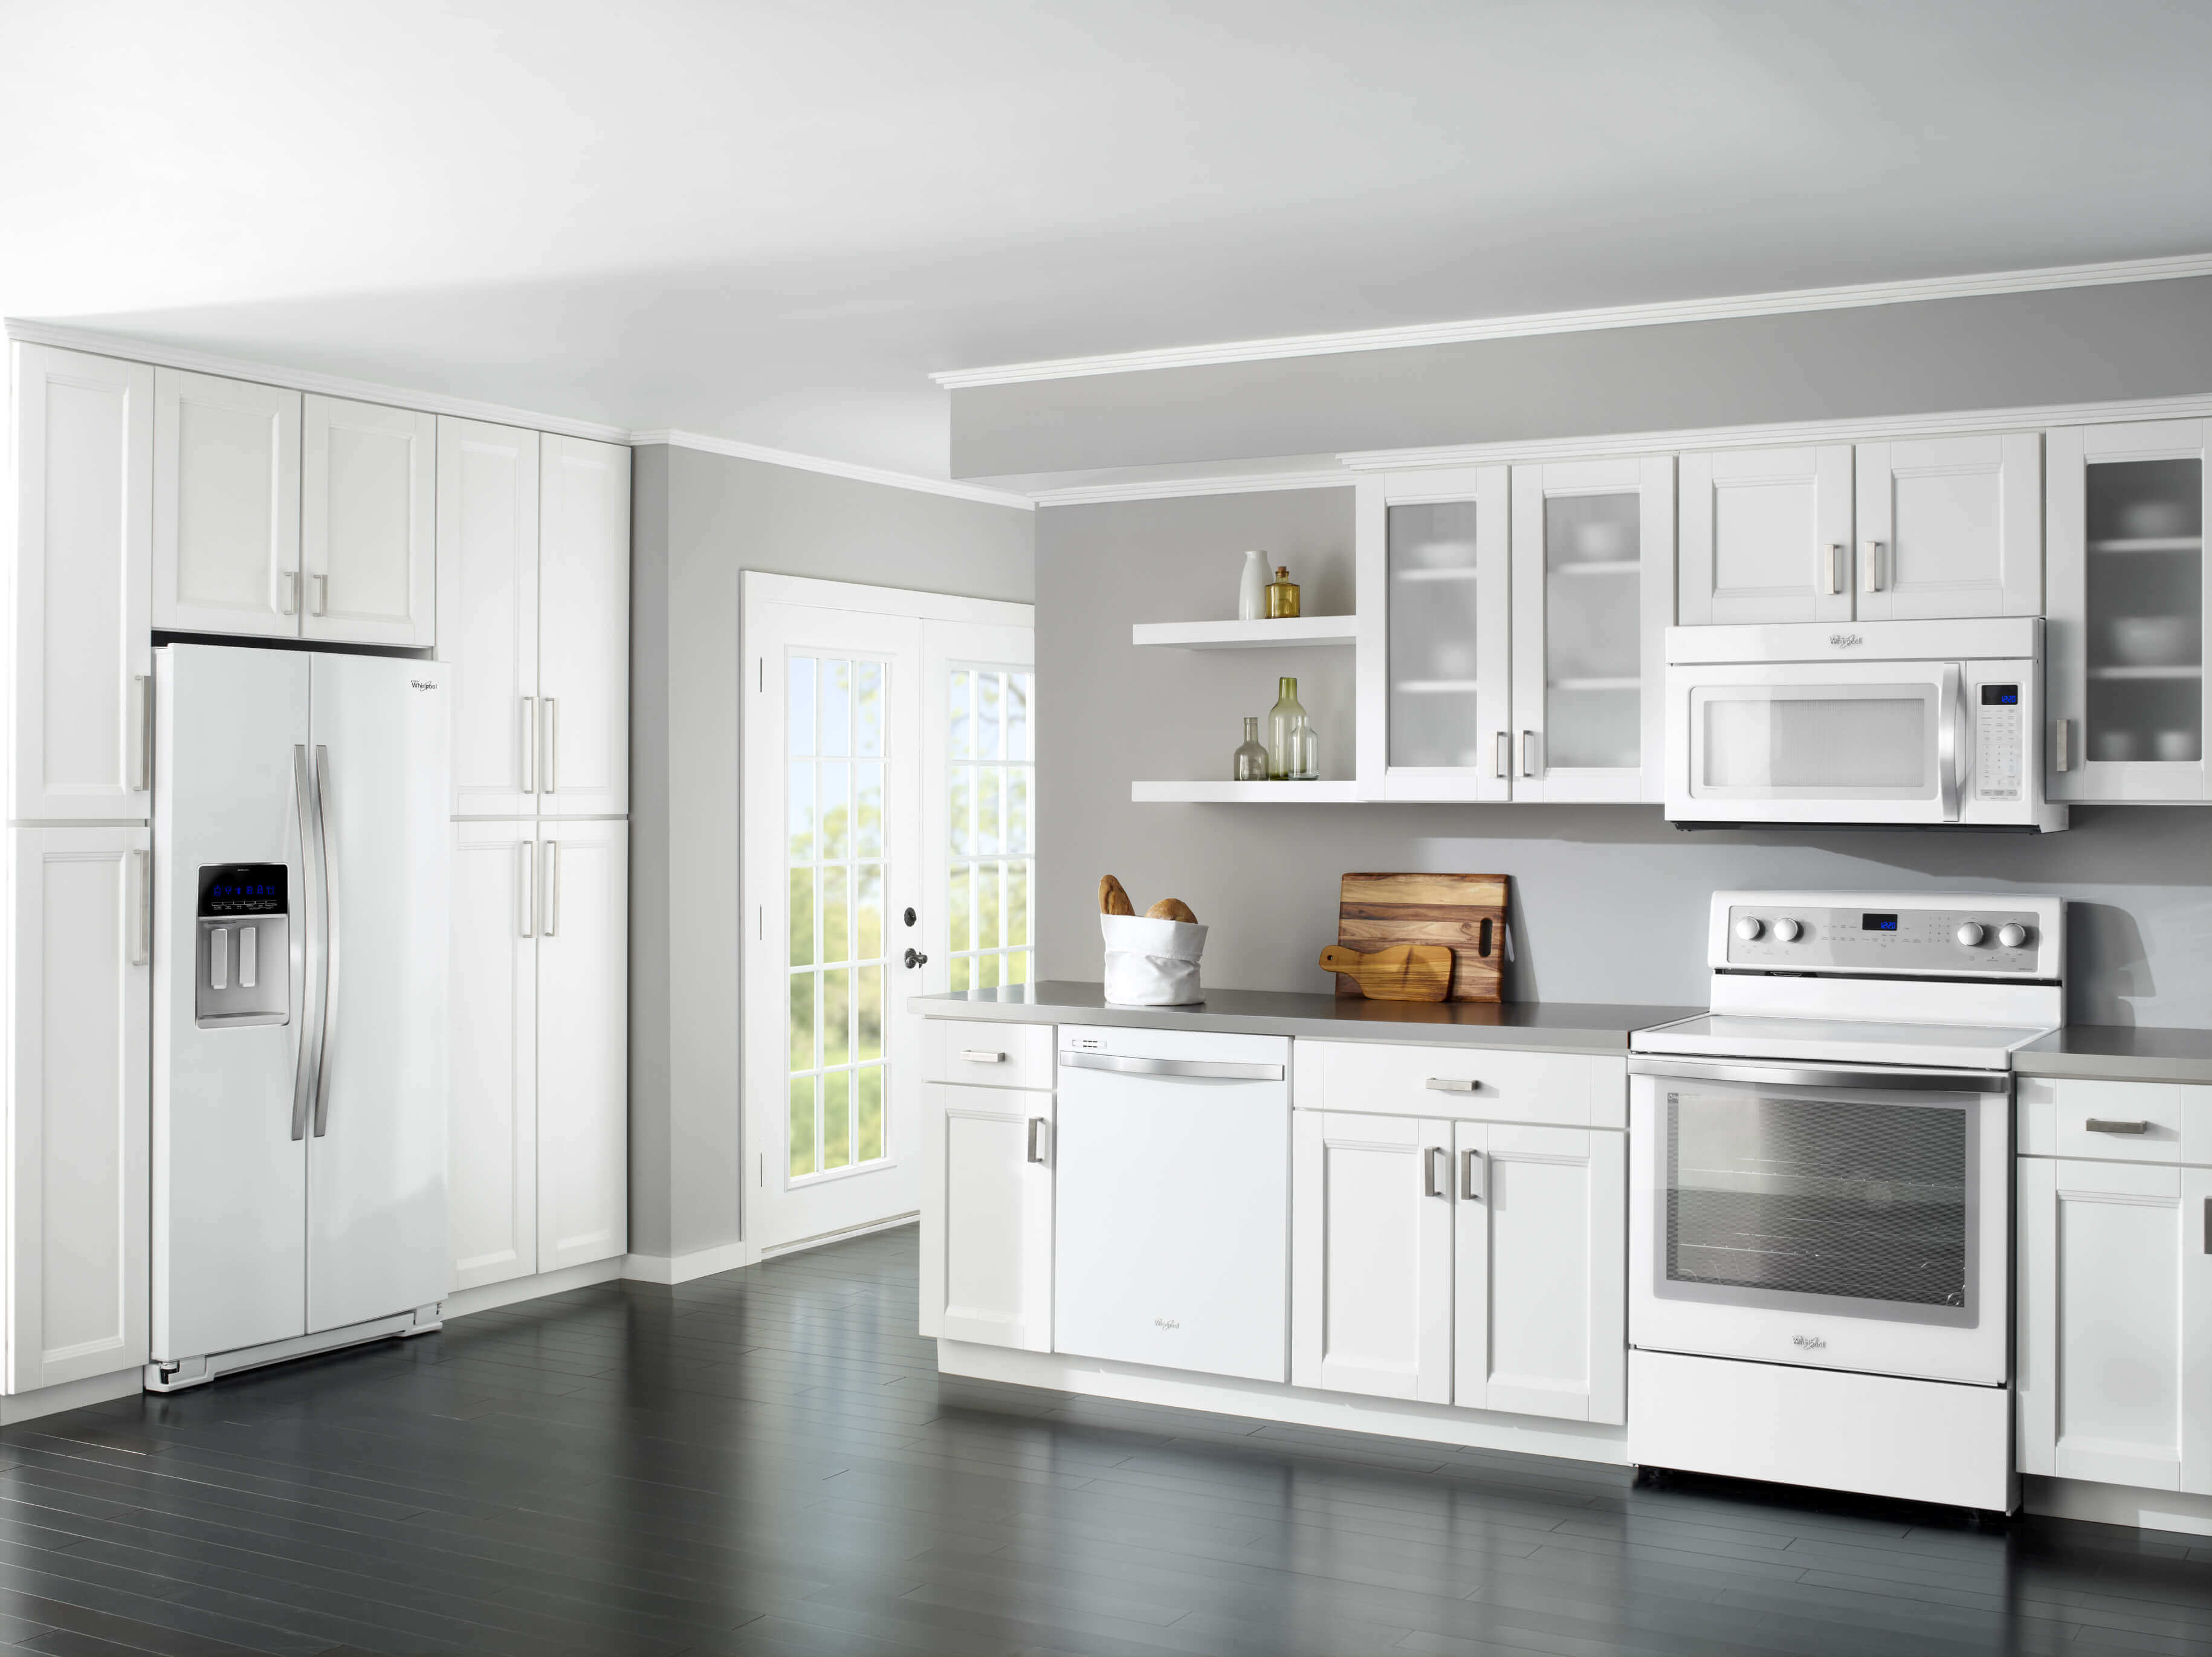 The feature of this modern kitchen design with white appliances is clear at the first look. The ultra–modern white appliances finish the look of the space by adding yet another touch of modernism to the entire design